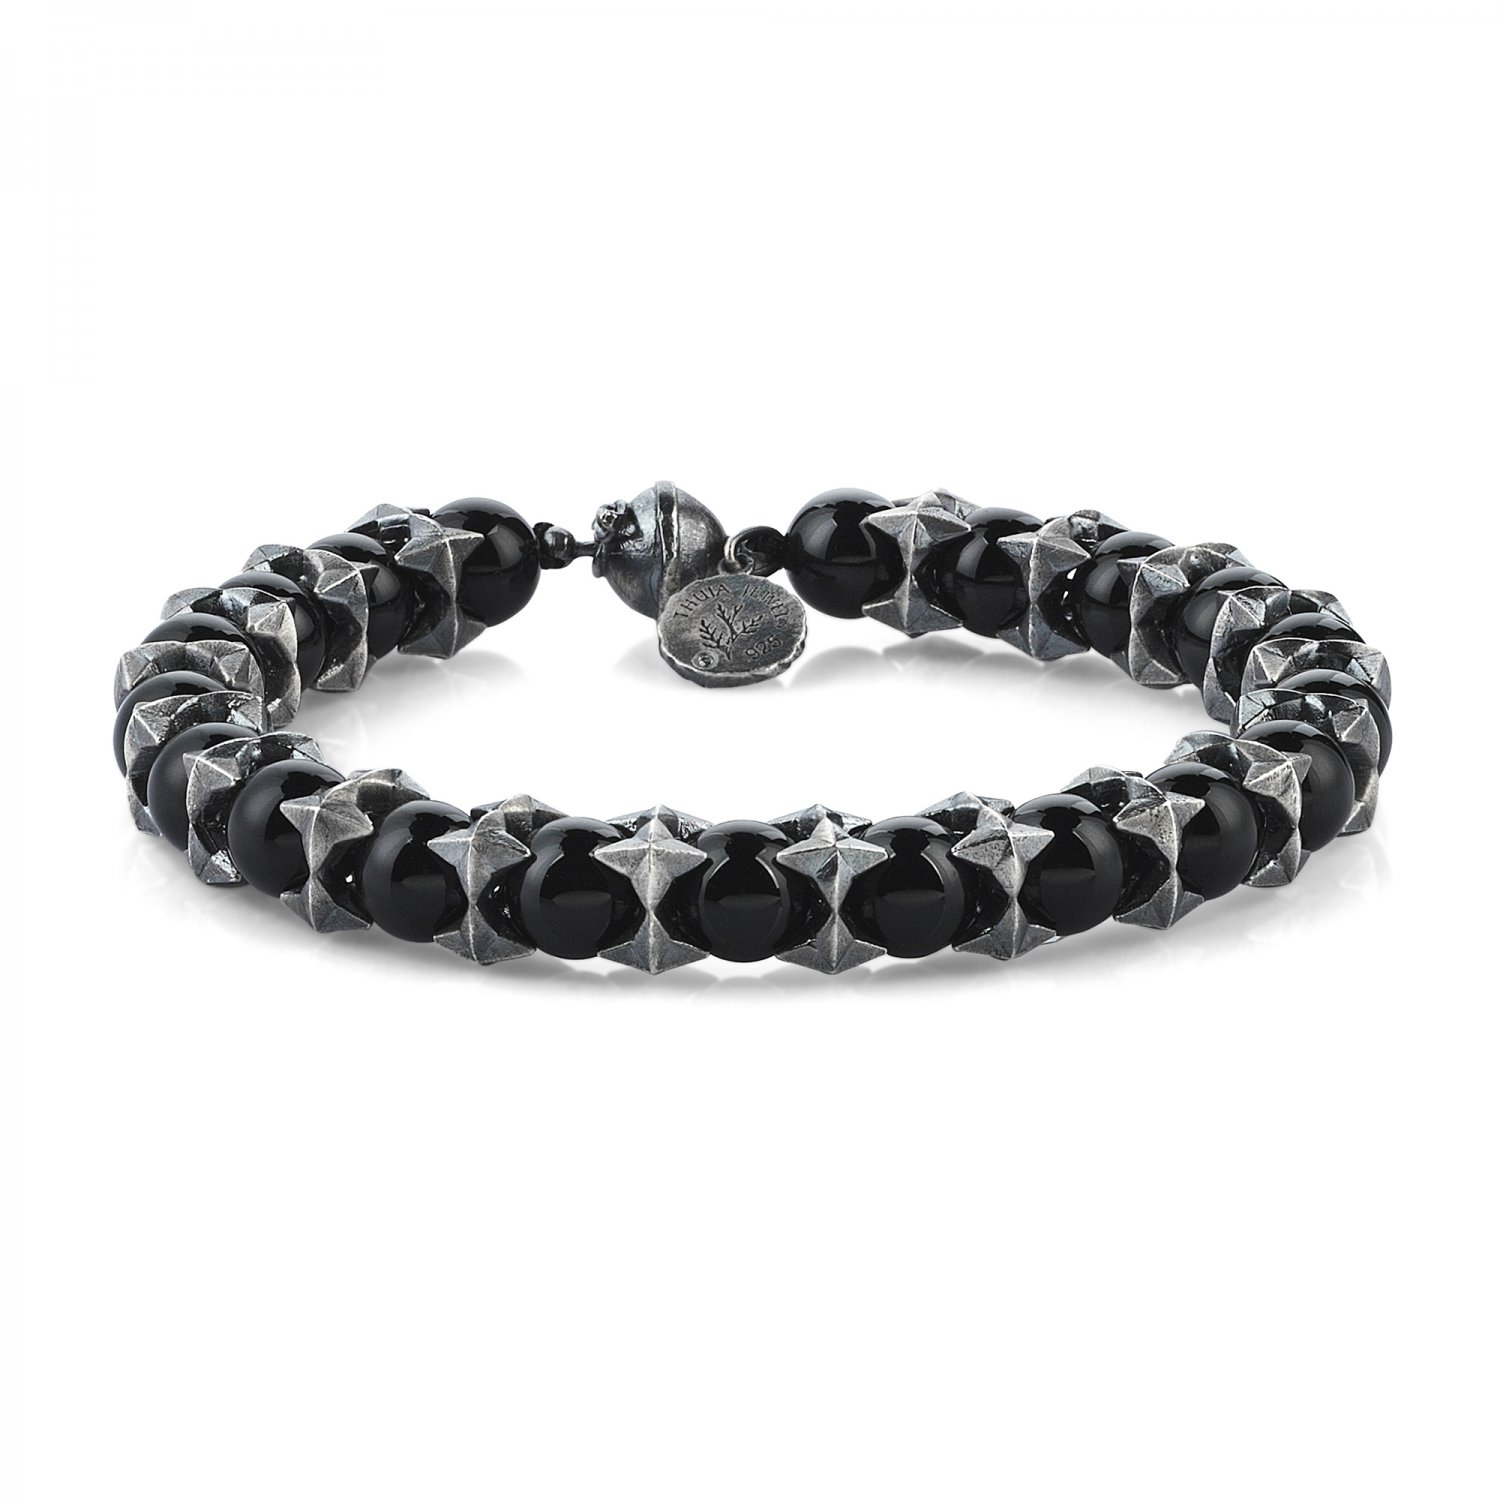 Oxidised Silver Cubic Cage Bracelet with Black Onyx Beads, 8.00mm